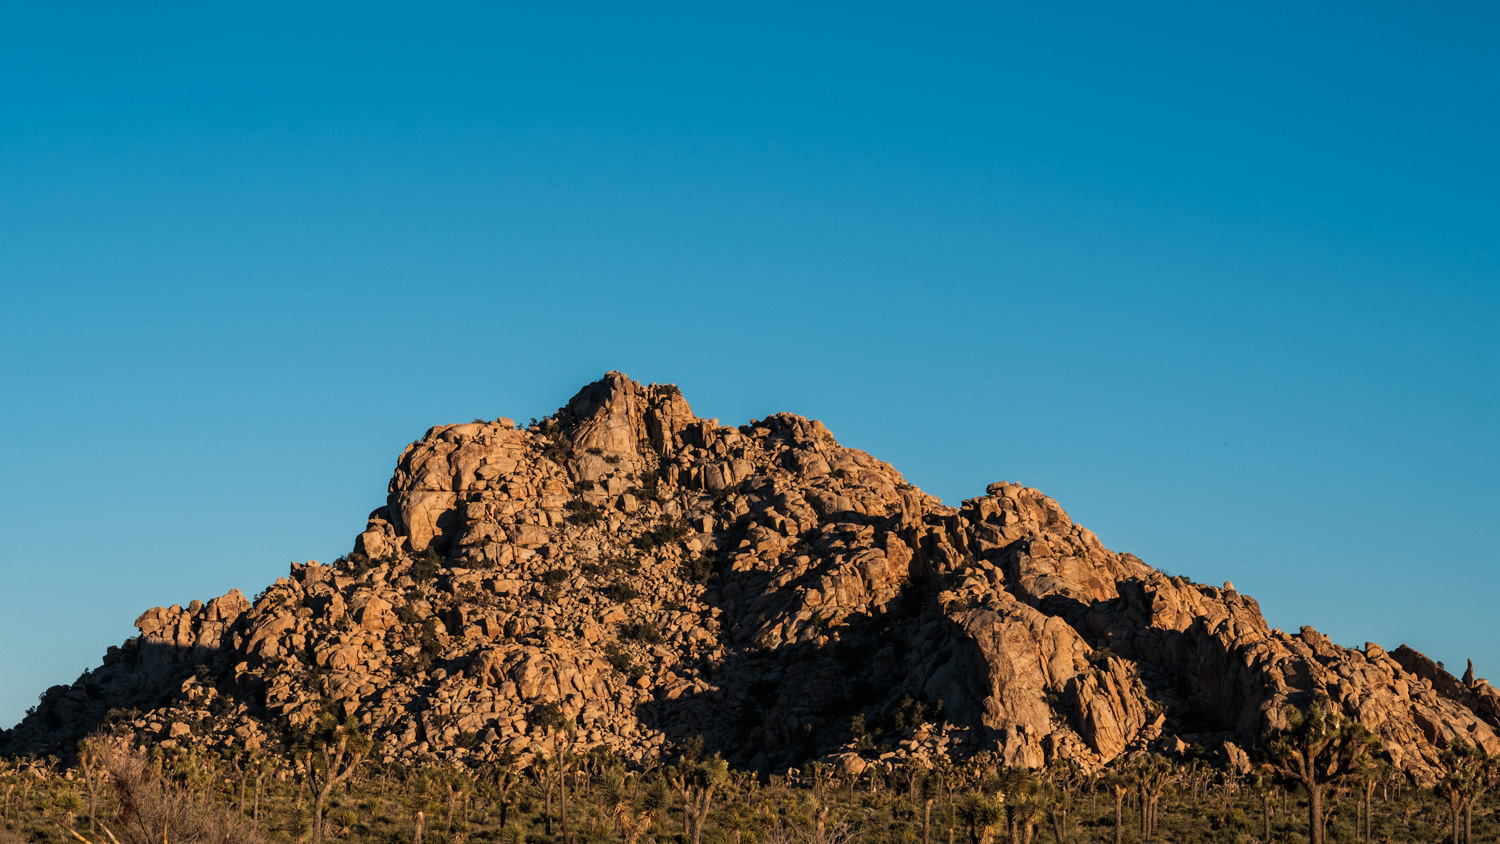 This mountain of rocks was on our right side and it got even more incredible with the warm light from the setting Sun